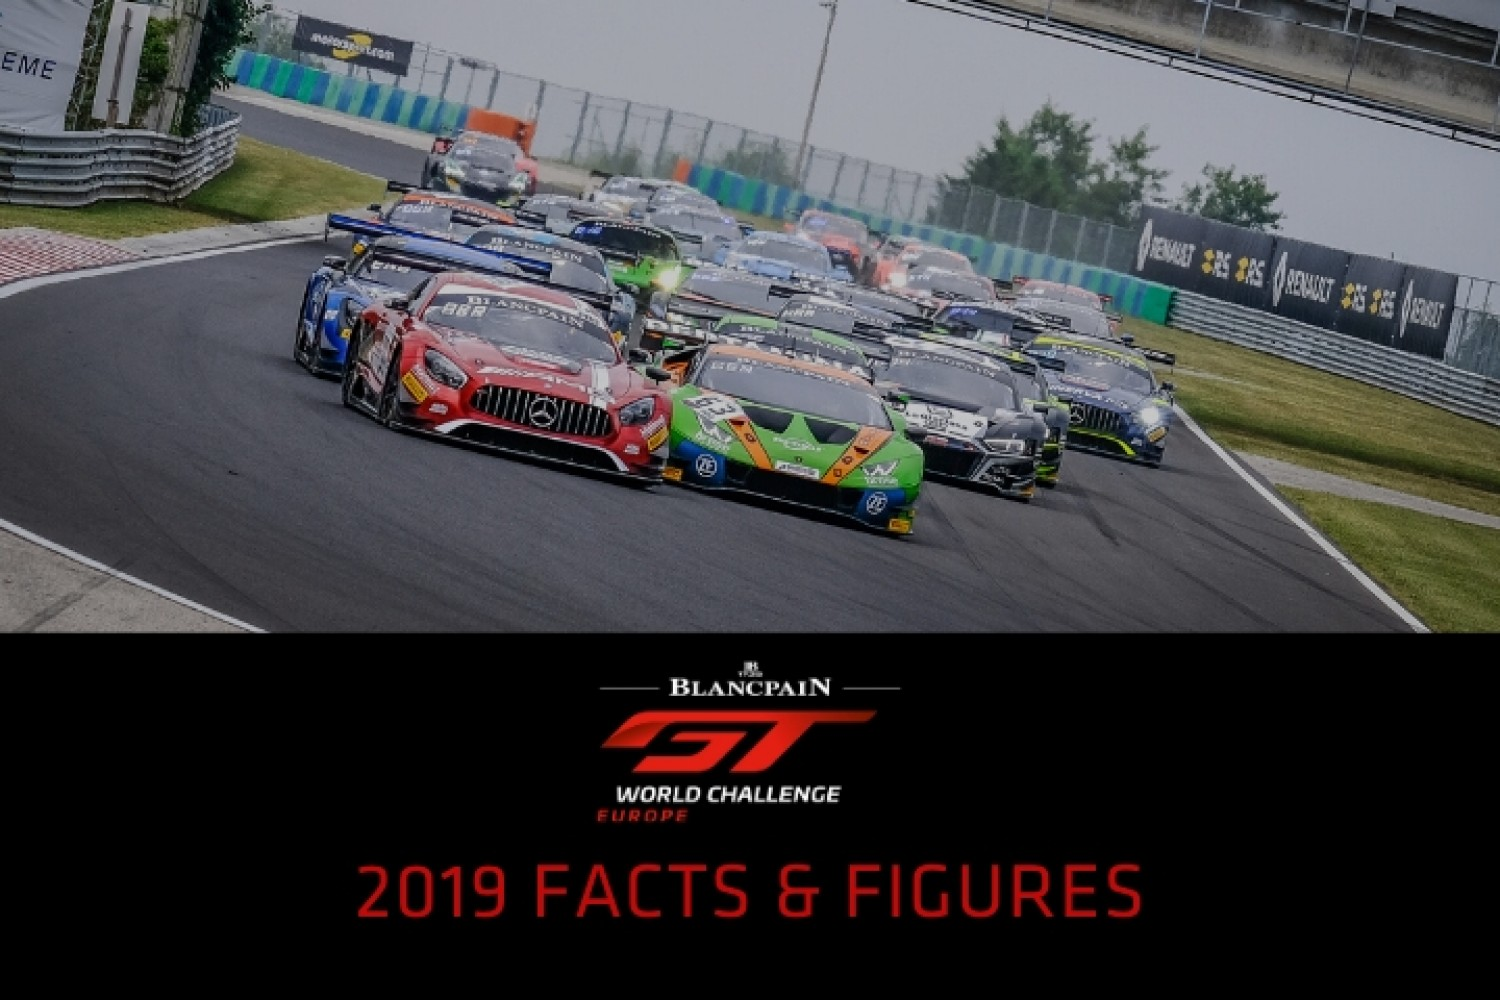 The 2019 Blancpain GT World Challenge Europe season in statistics